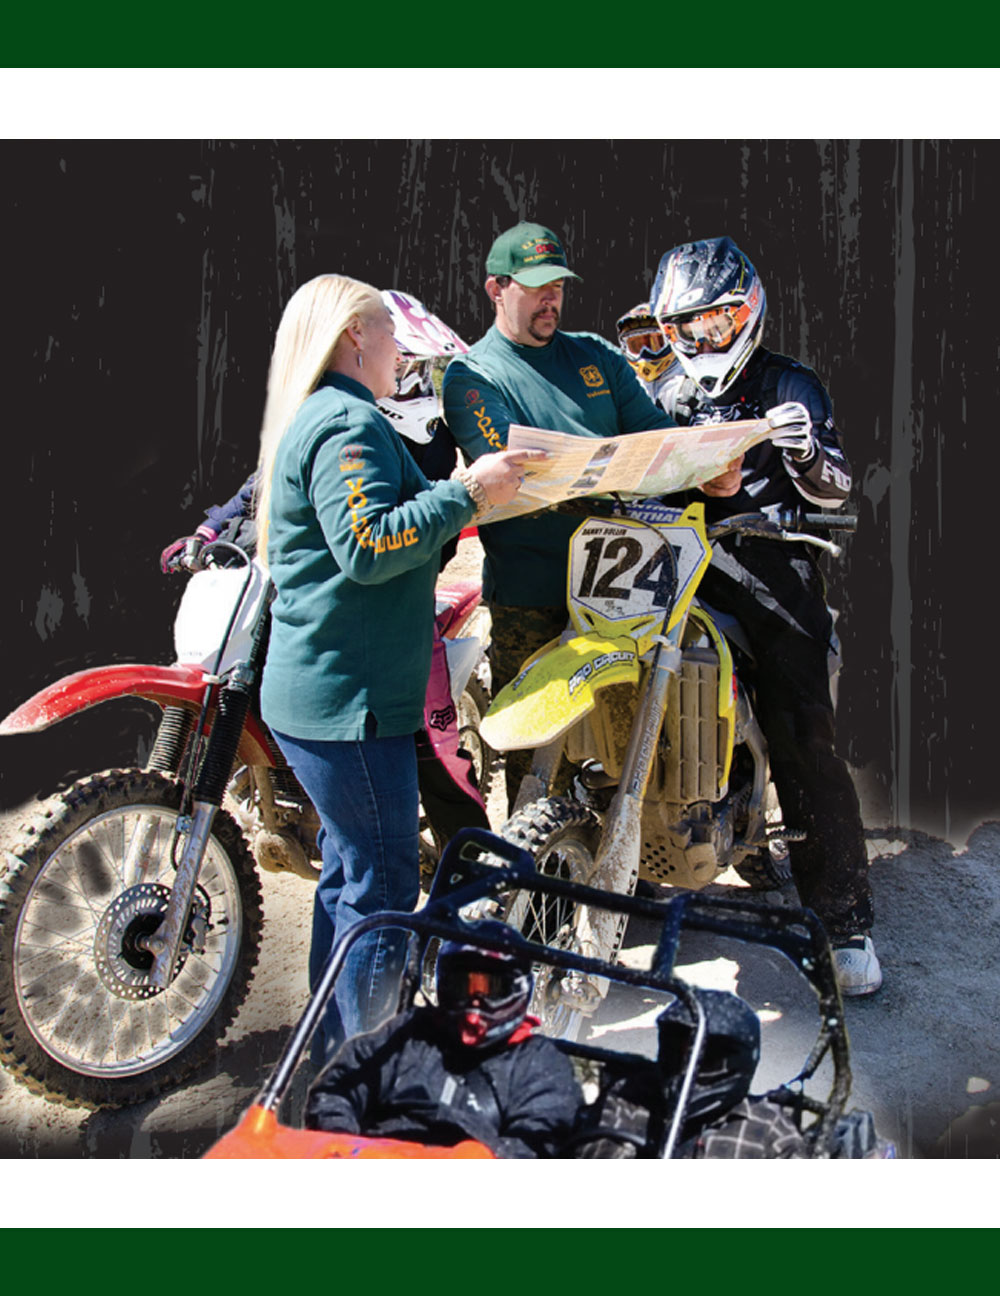 Education riders about save off highway riding